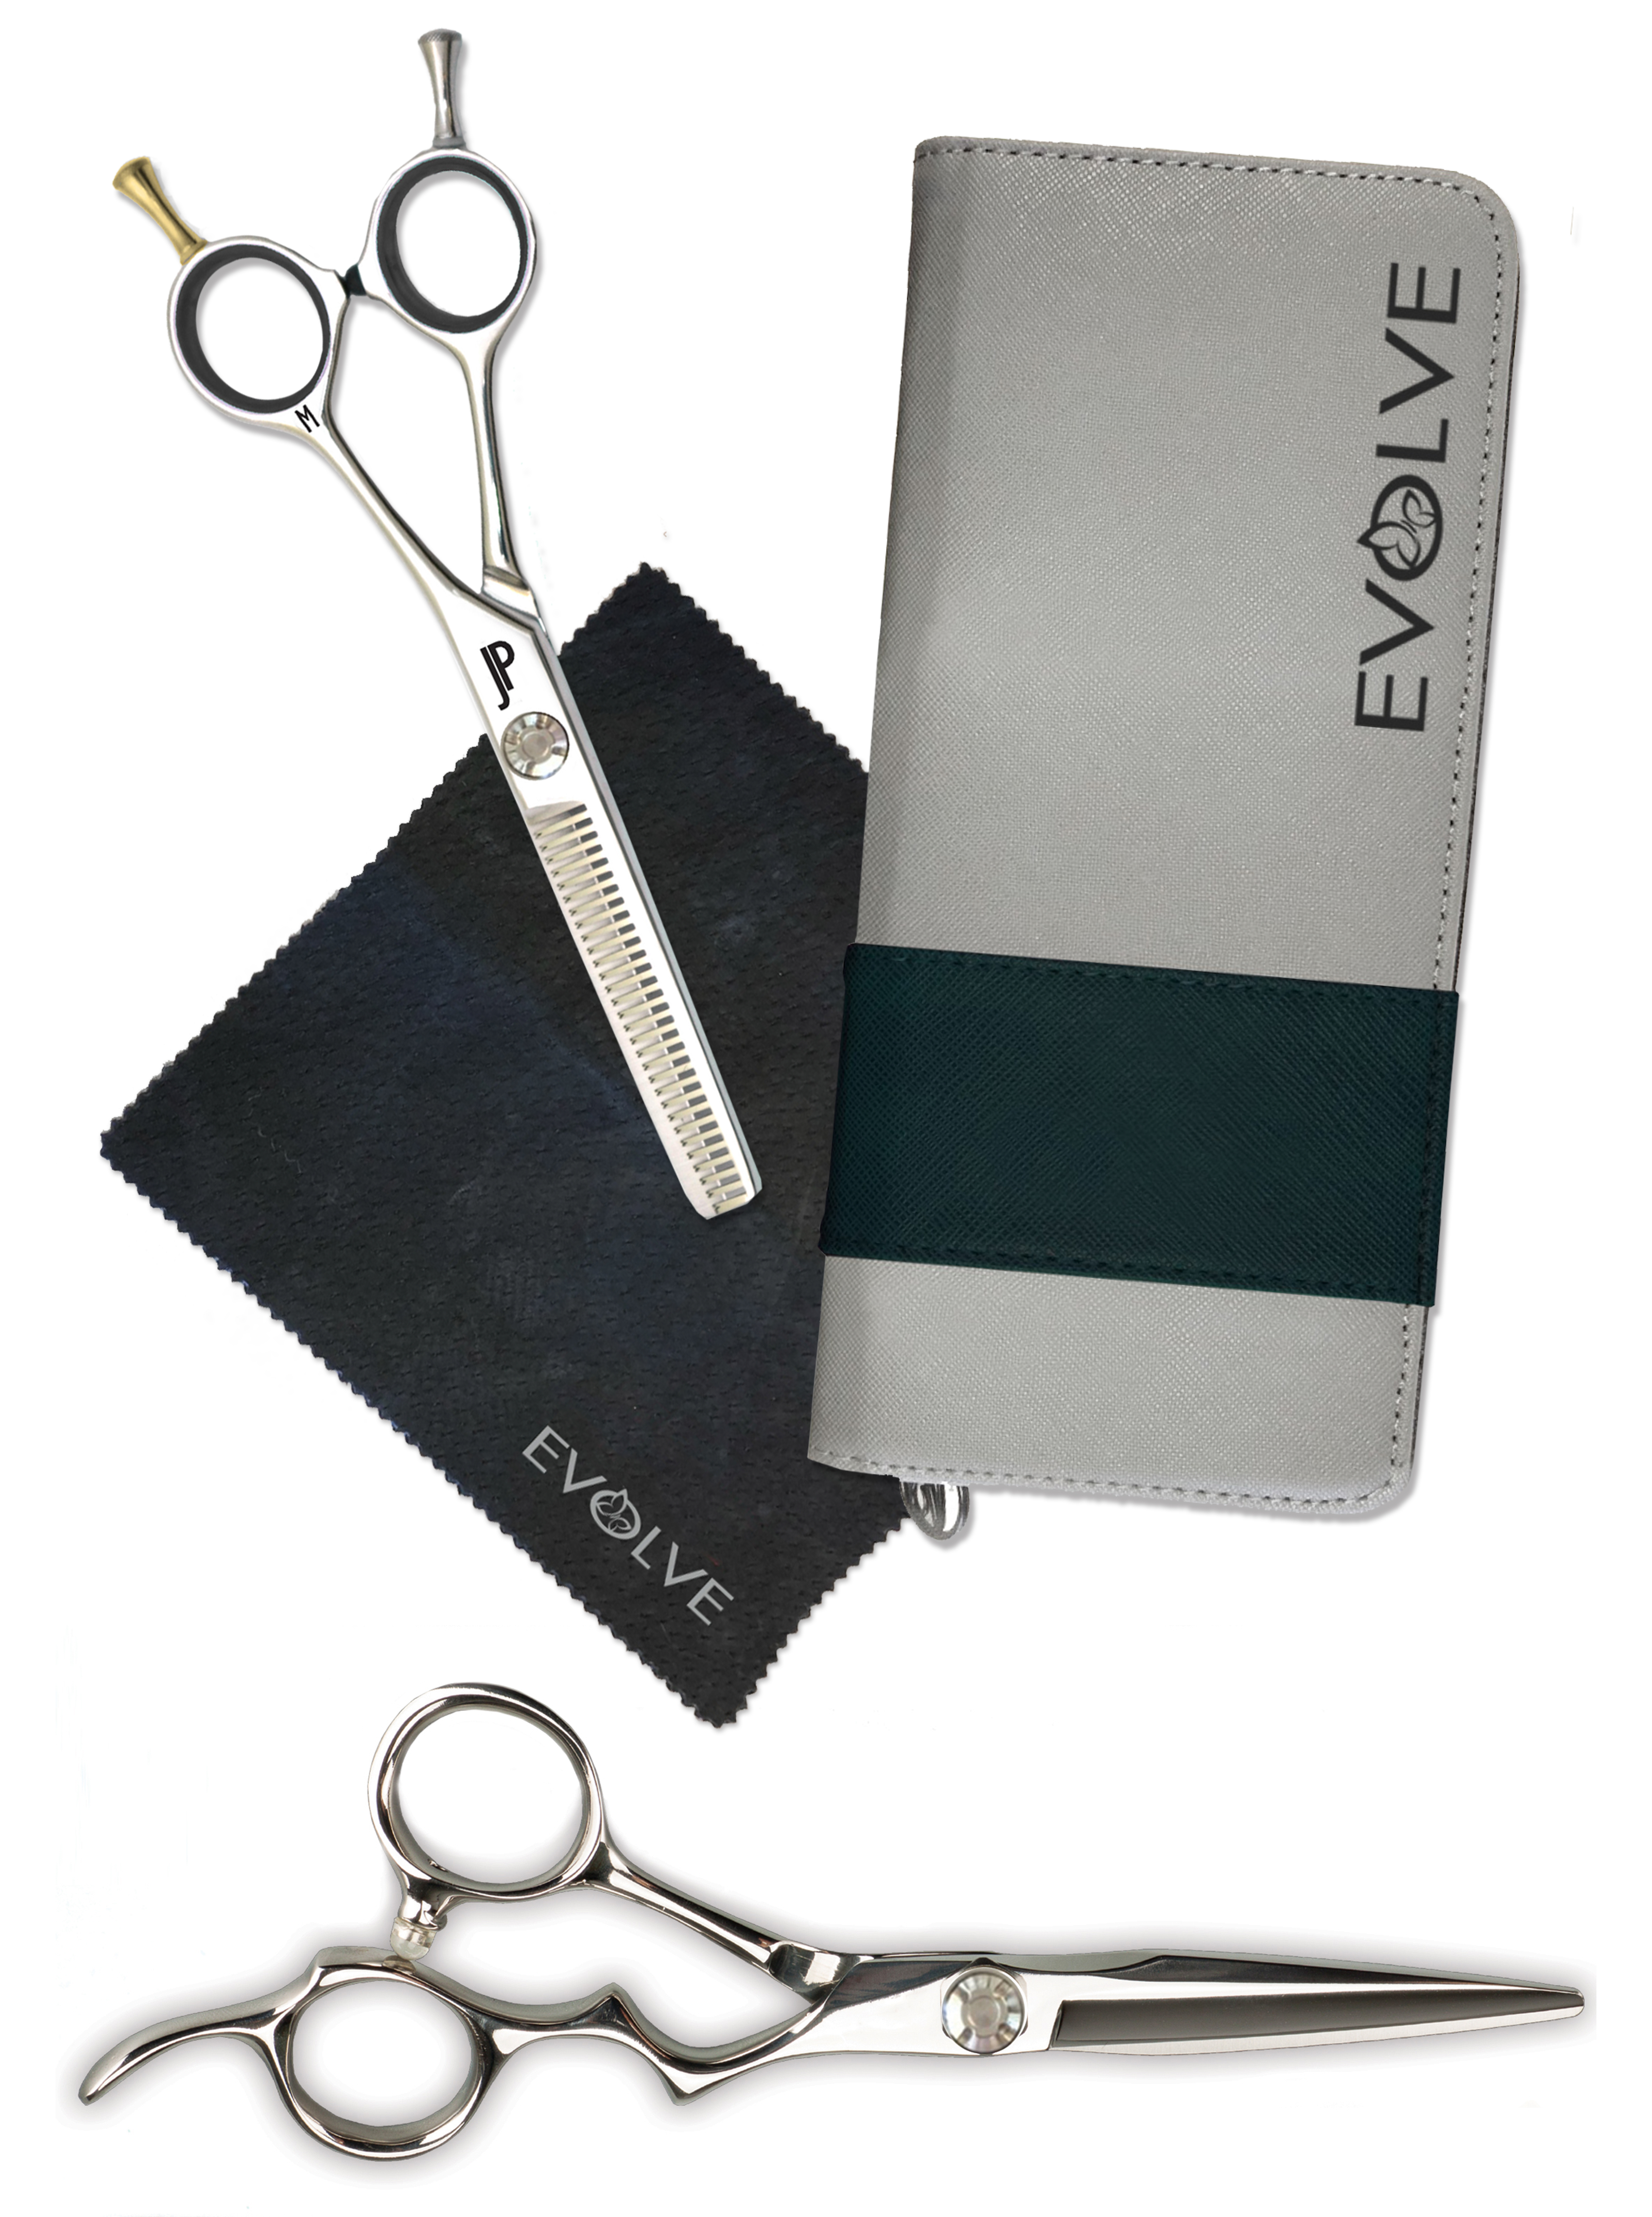 Evolve Hair Solutions Introduces Samurai Scissors and Buttering & Melting Shears